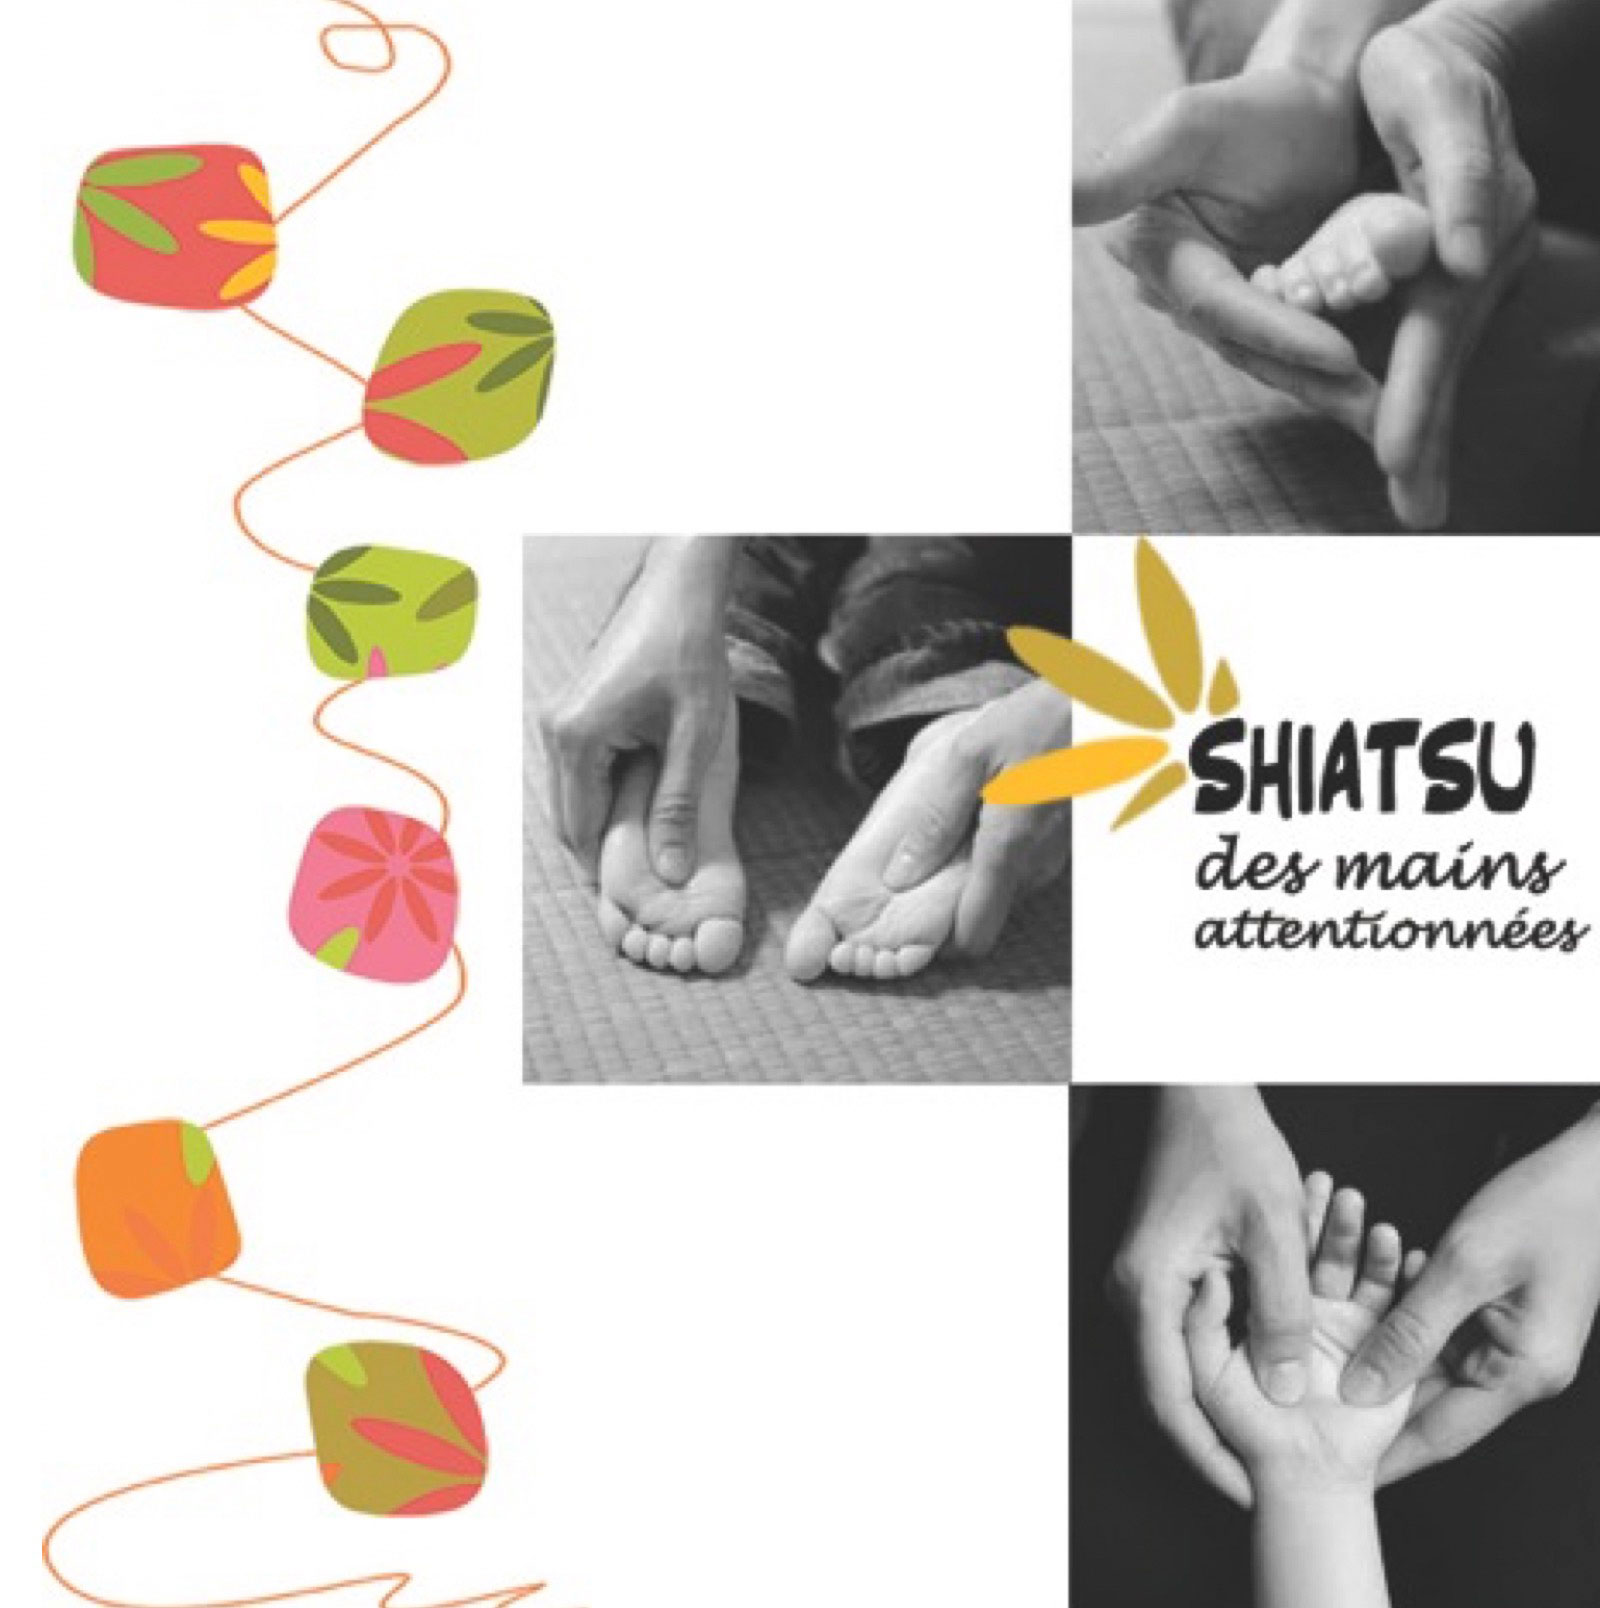 Mains-attentionnées - Edith ANAHORY - Shiatsu Toulouse